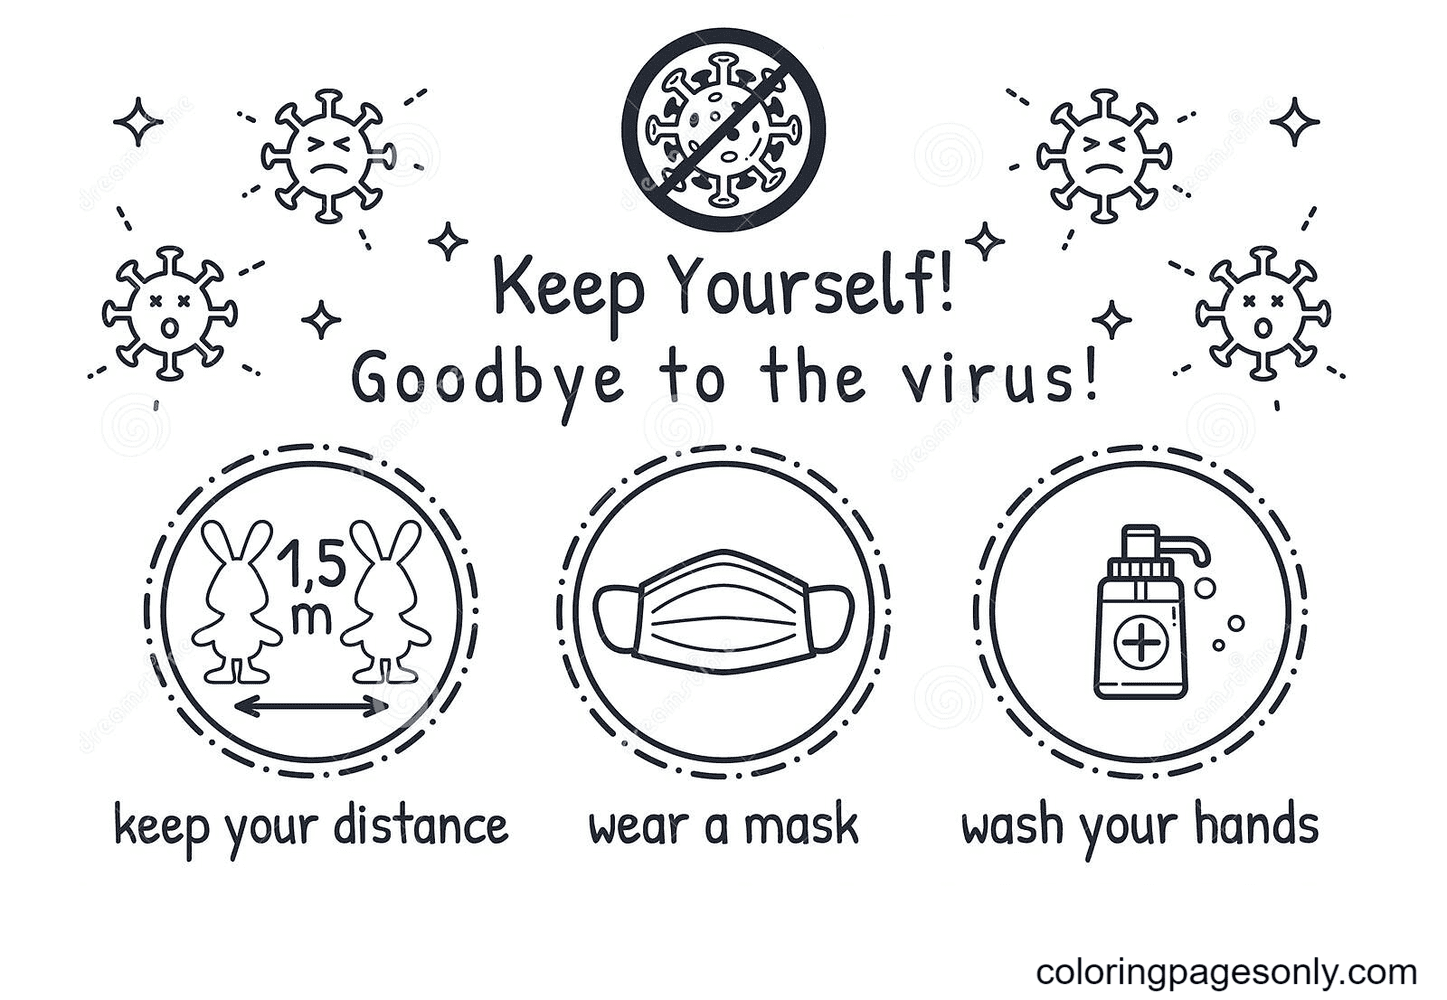 Coronavirus COVID-19 Pandemic Prevention Measures Coloring Page